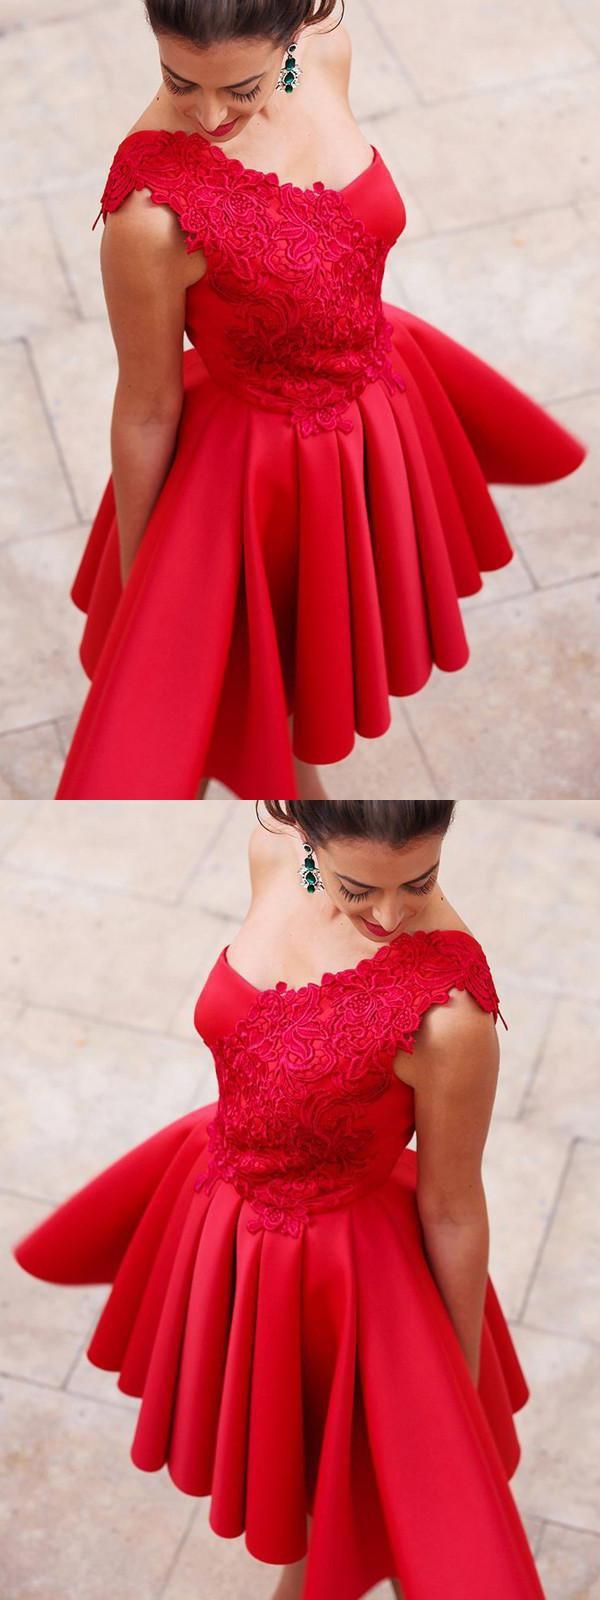 Short red amy homecoming dresses pinterest